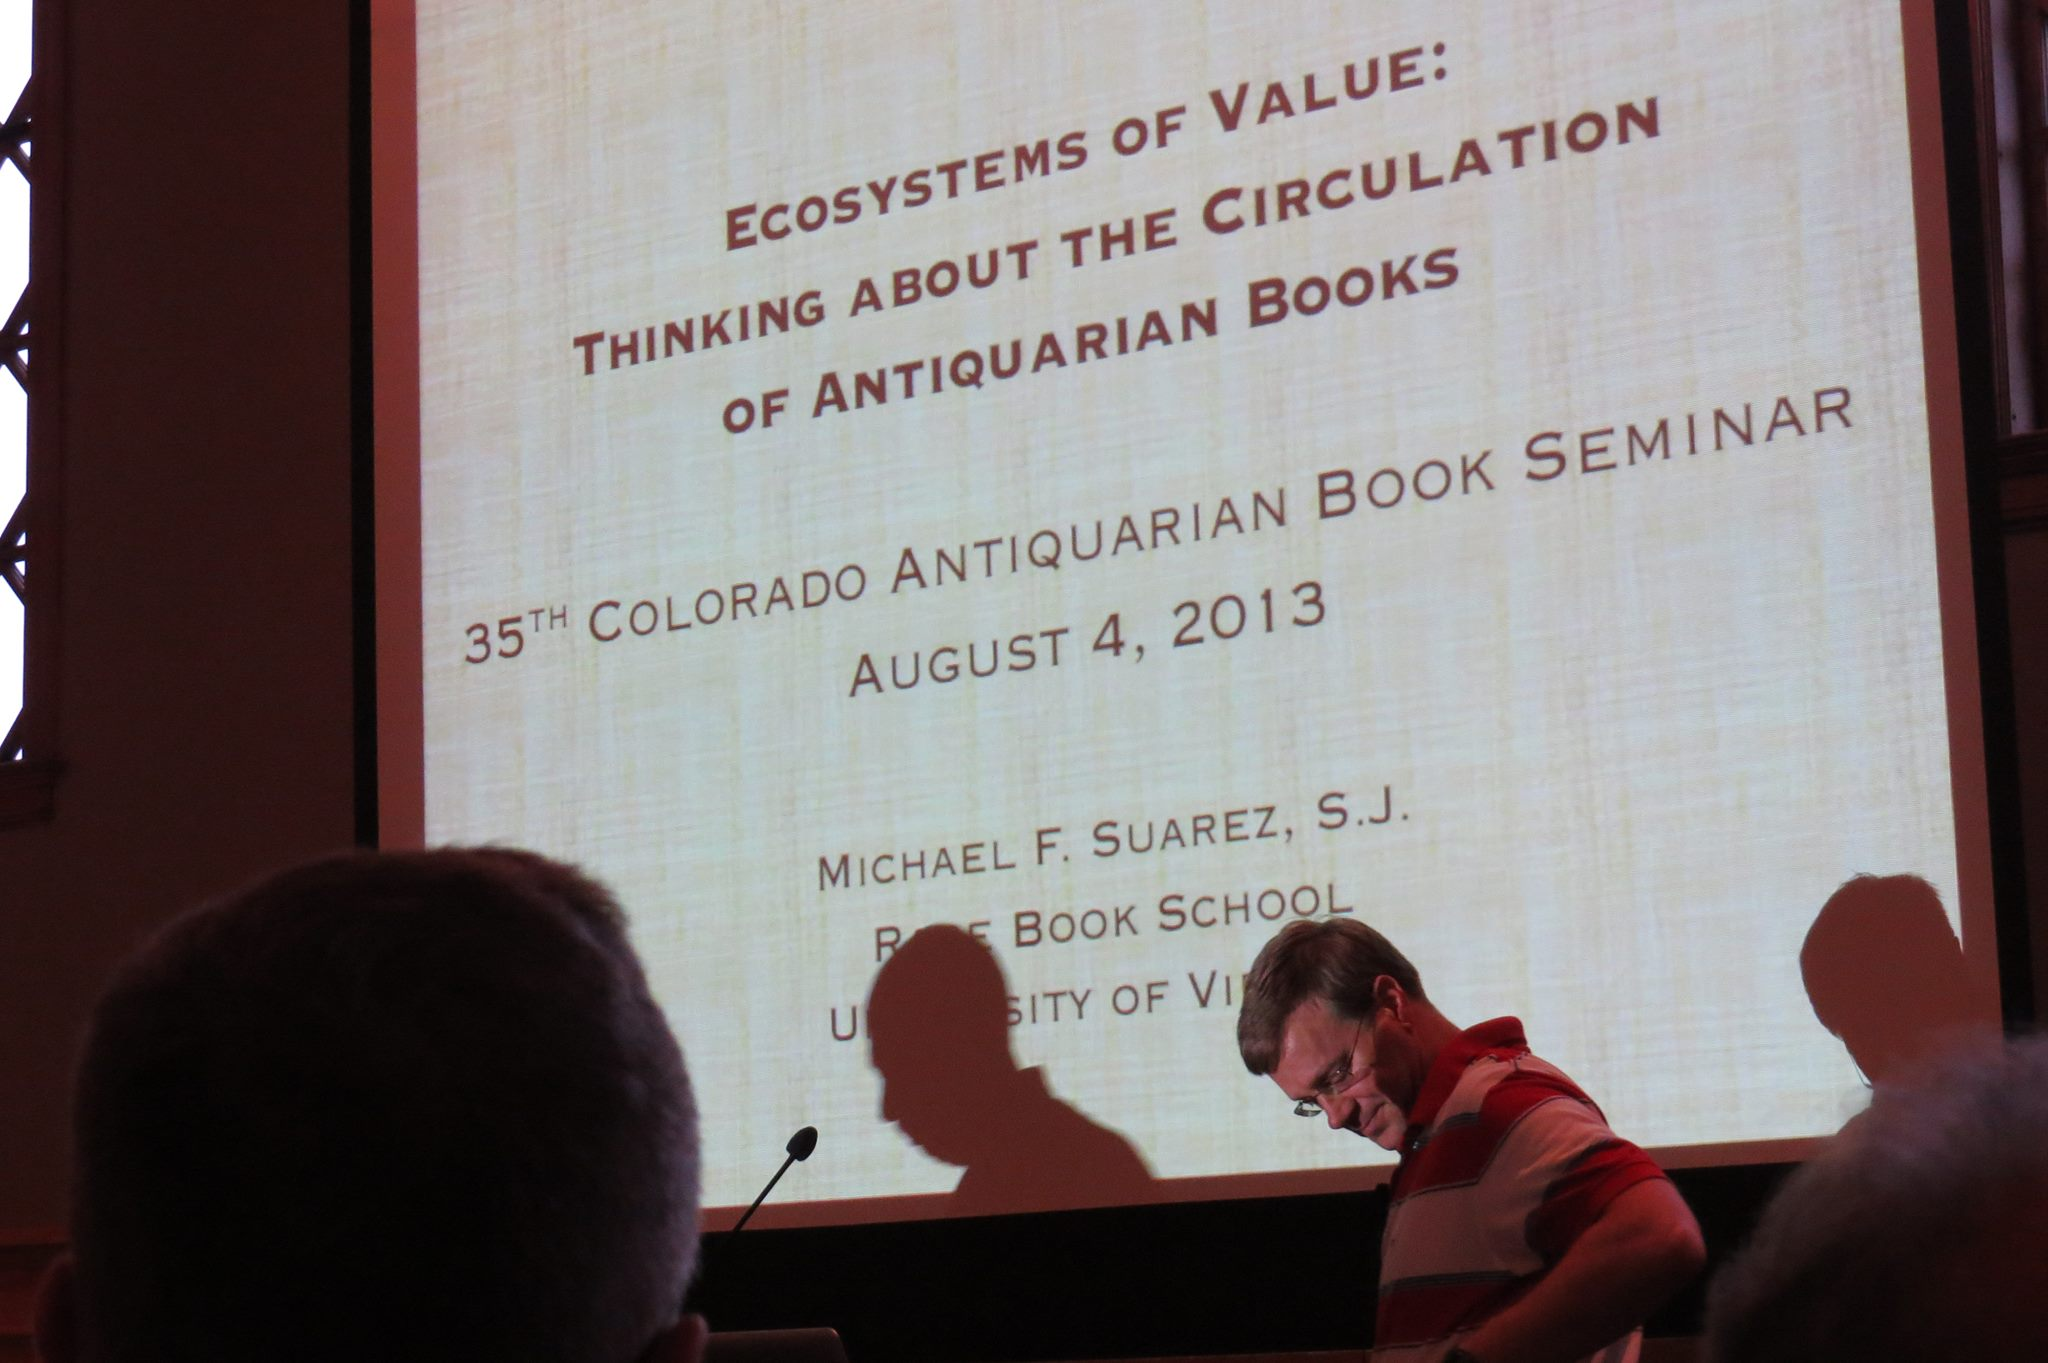 """A talk by Michael Suarez, titled """"Ecosystems of Value: Thinking about the Circulation of Antiquarian Books"""""""